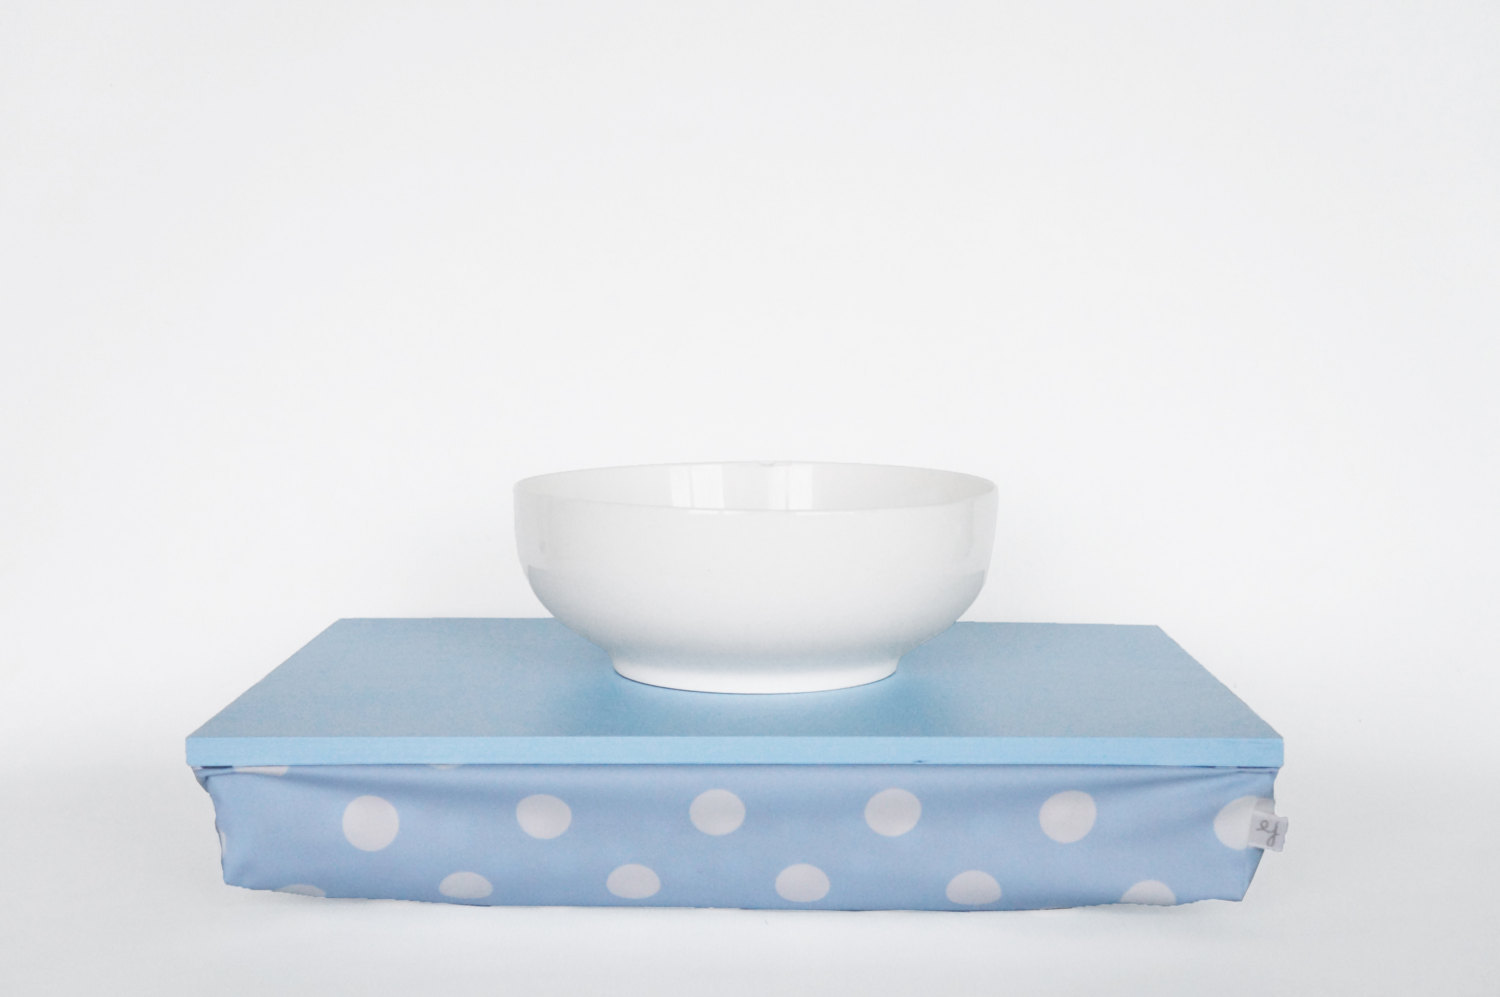 Polka dot serving tray with pillow, laptop stand- light slate blue tray with lig